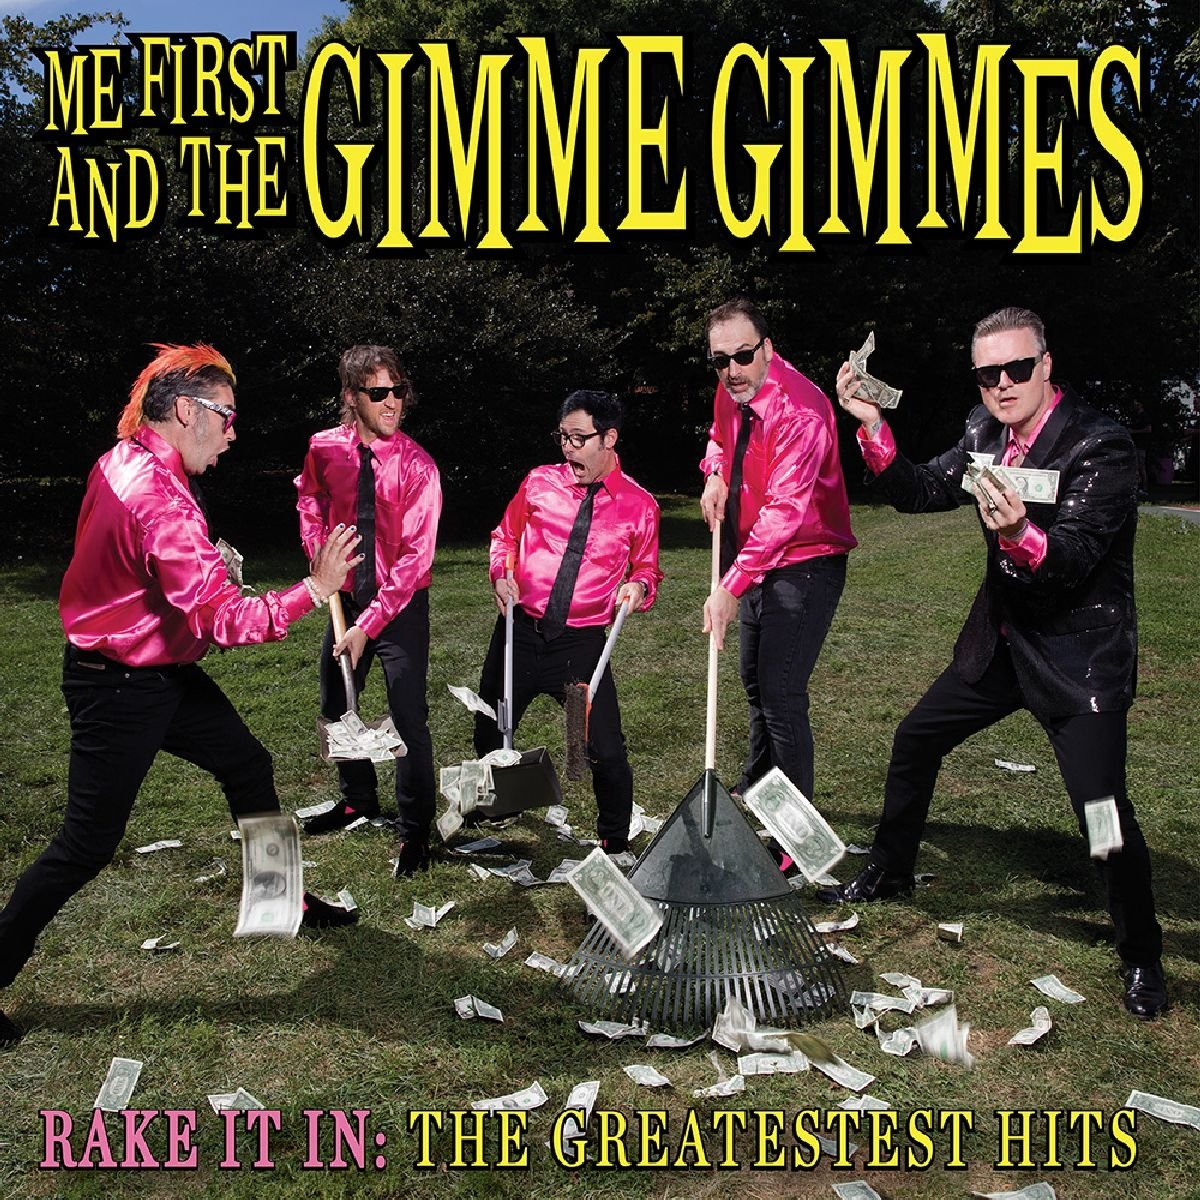 Me First and The Gimme Gimmes - Rake It In: The Greatestest Hits (2017) [WEB FLAC] Download